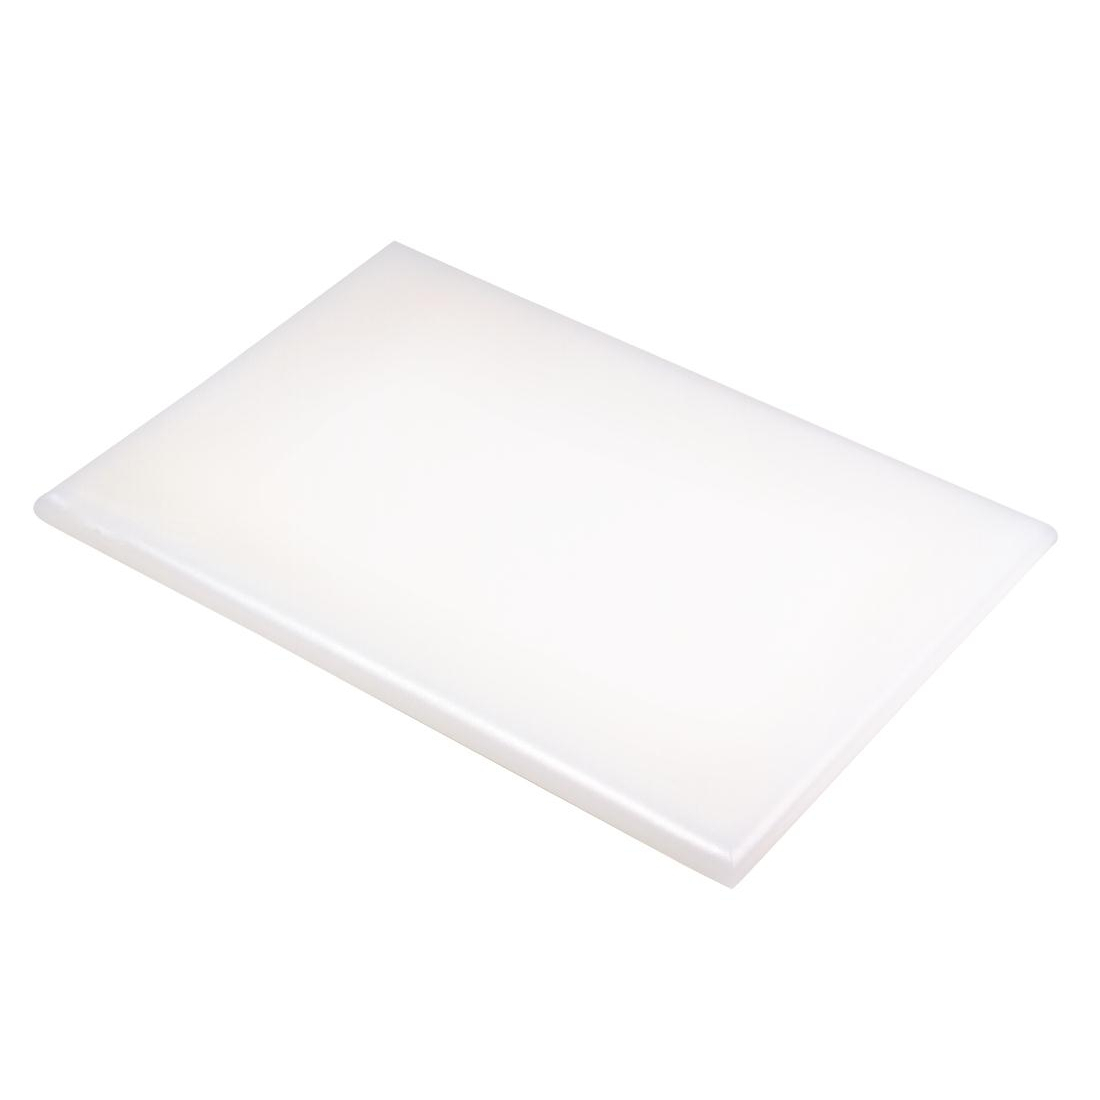 Hygiplas Extra Thick High Density White Chopping Board